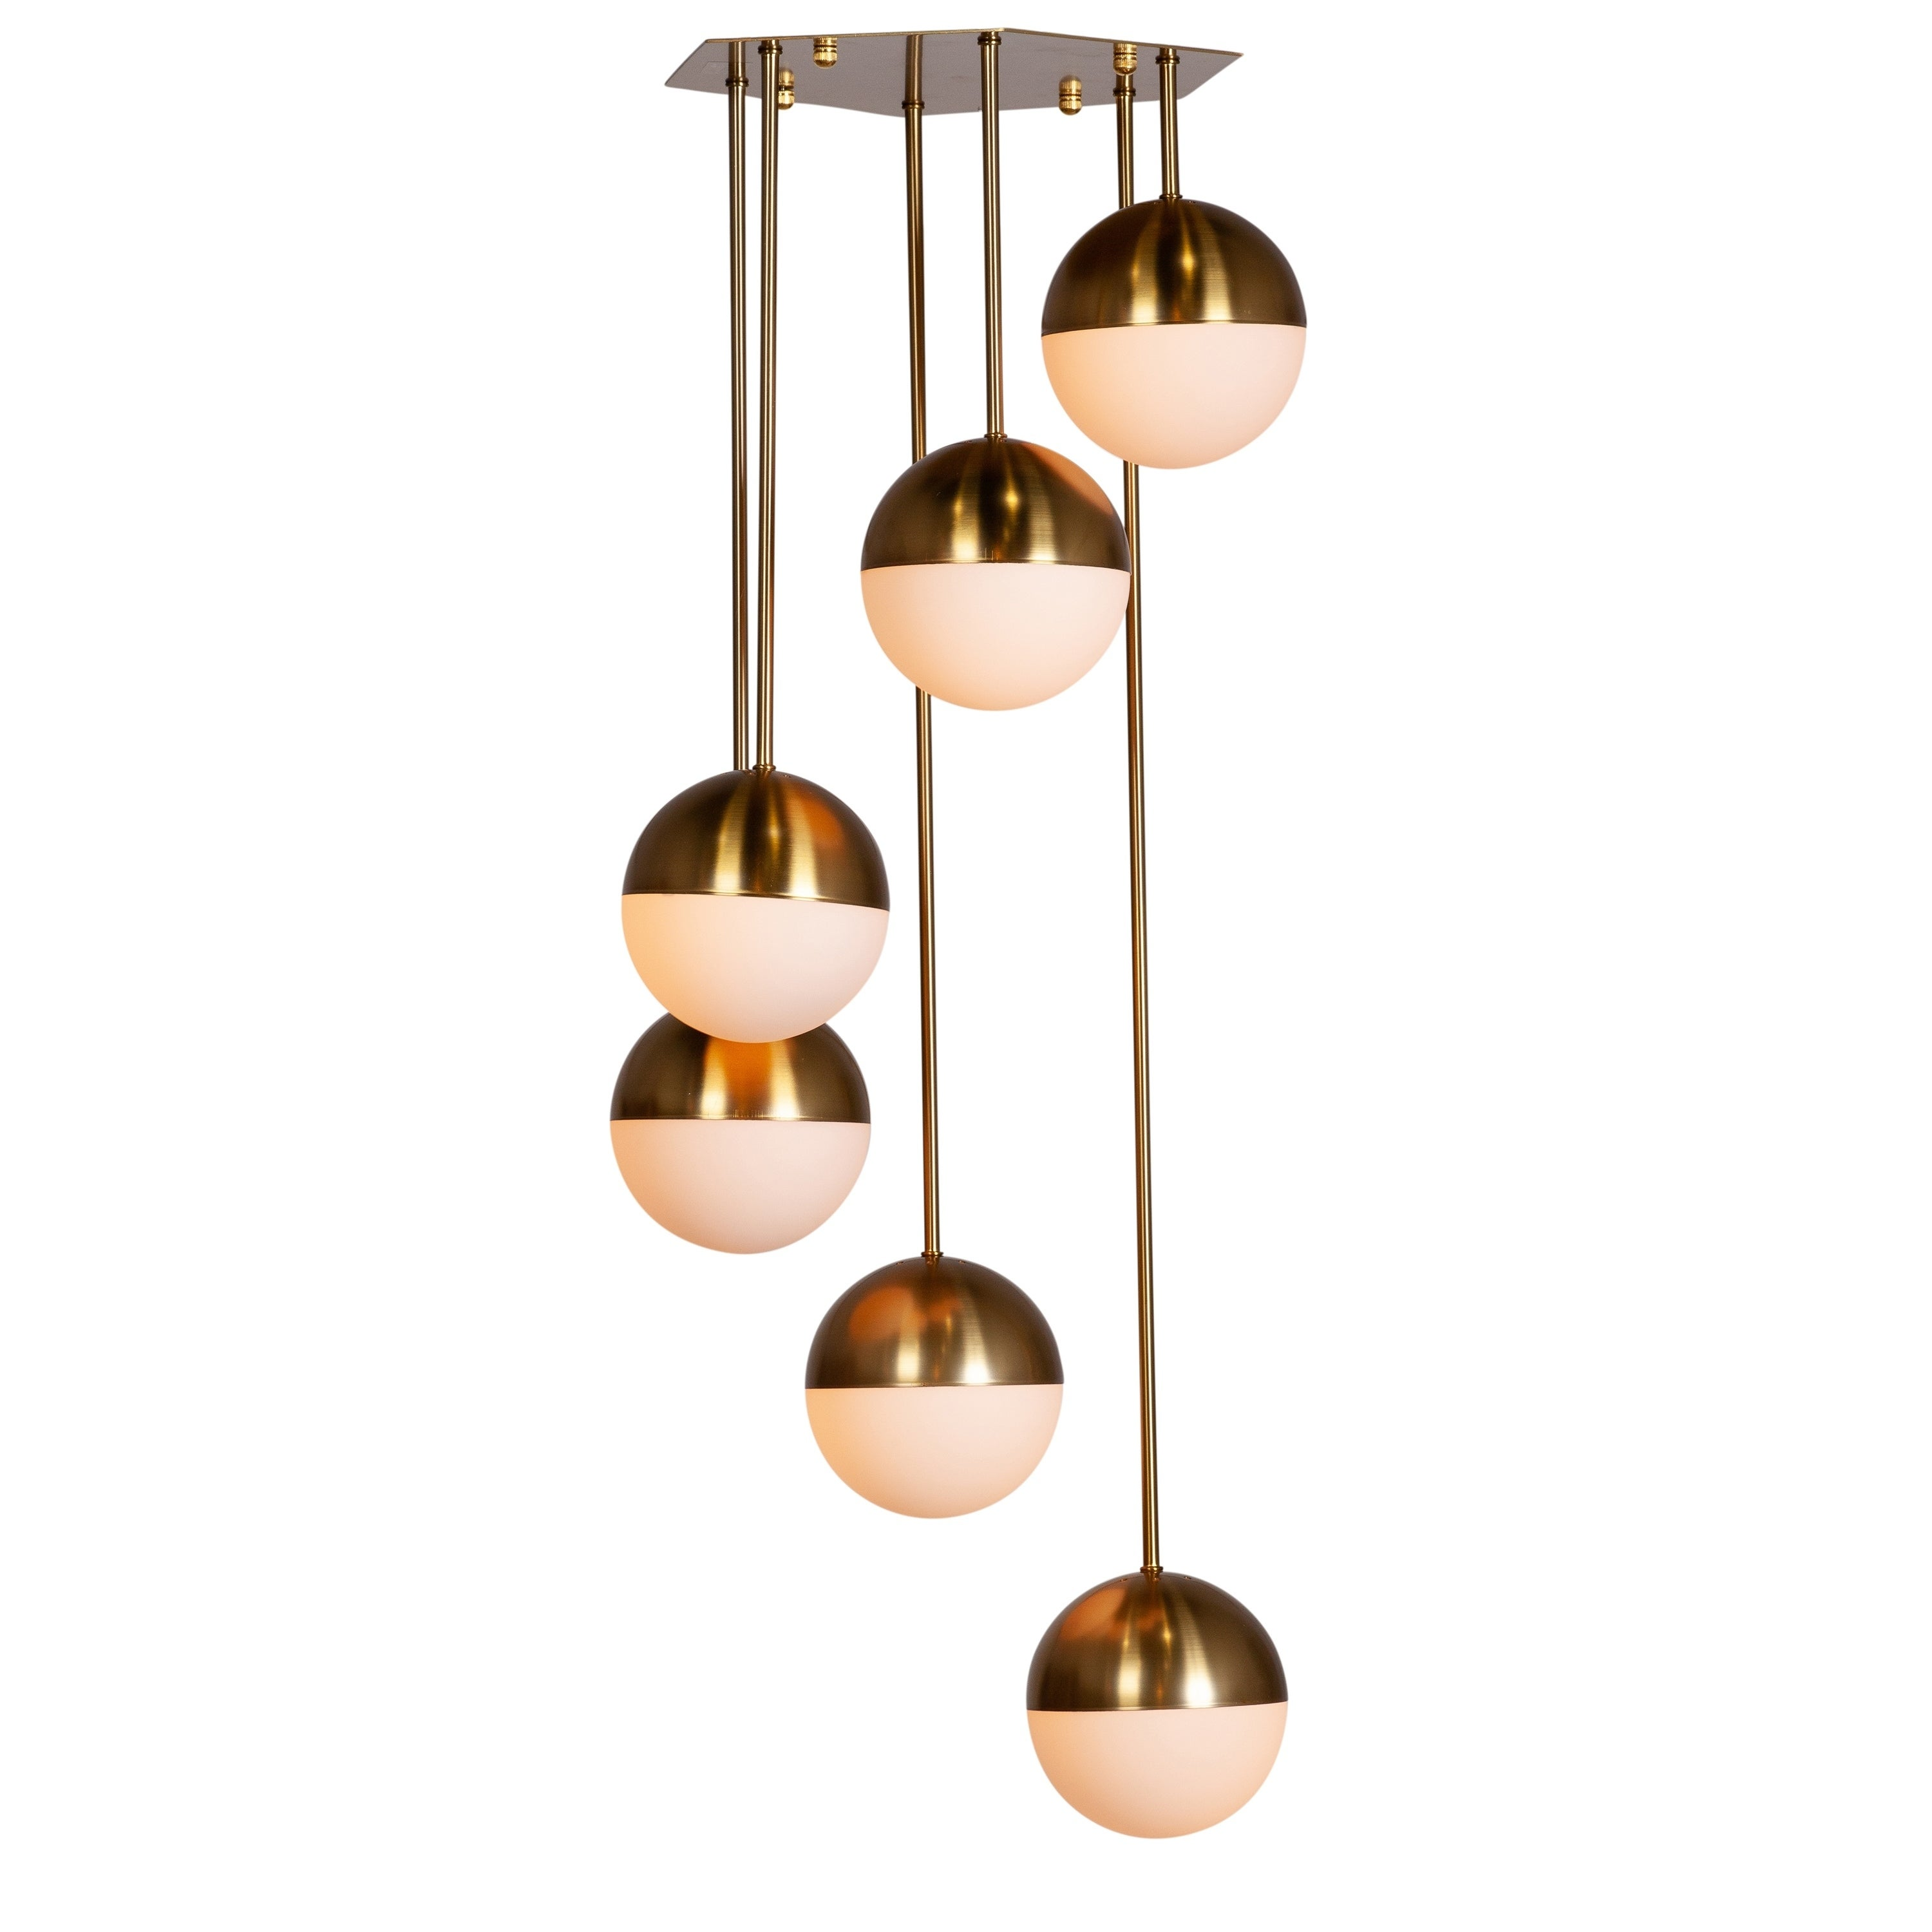 Shop Midcentury Modern 6 Globe Brass Chandelier On Sale Overstock 30787336